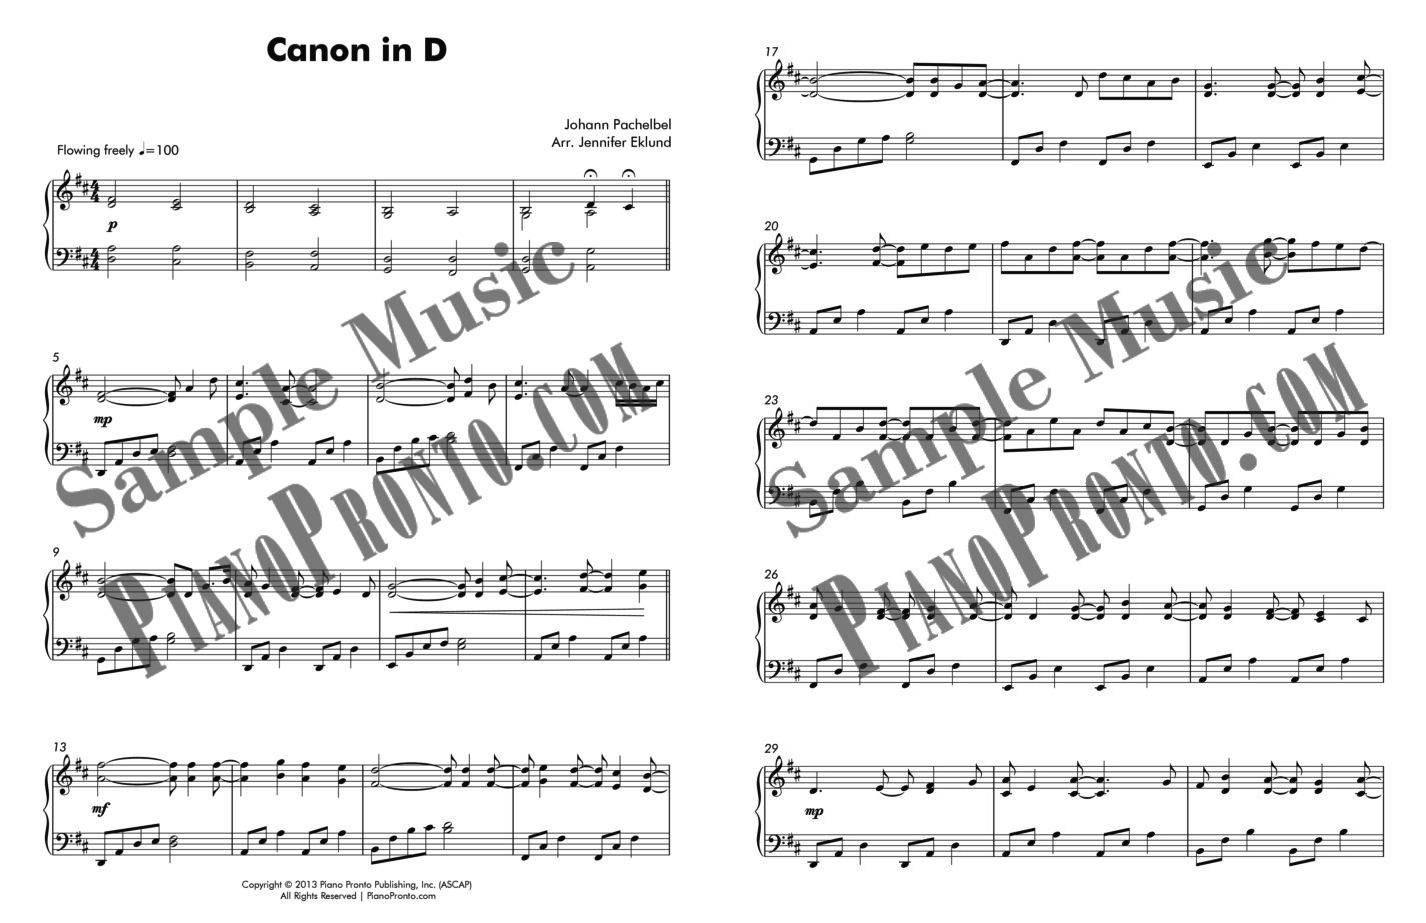 Canon in D: Contemporary Lyrical Version